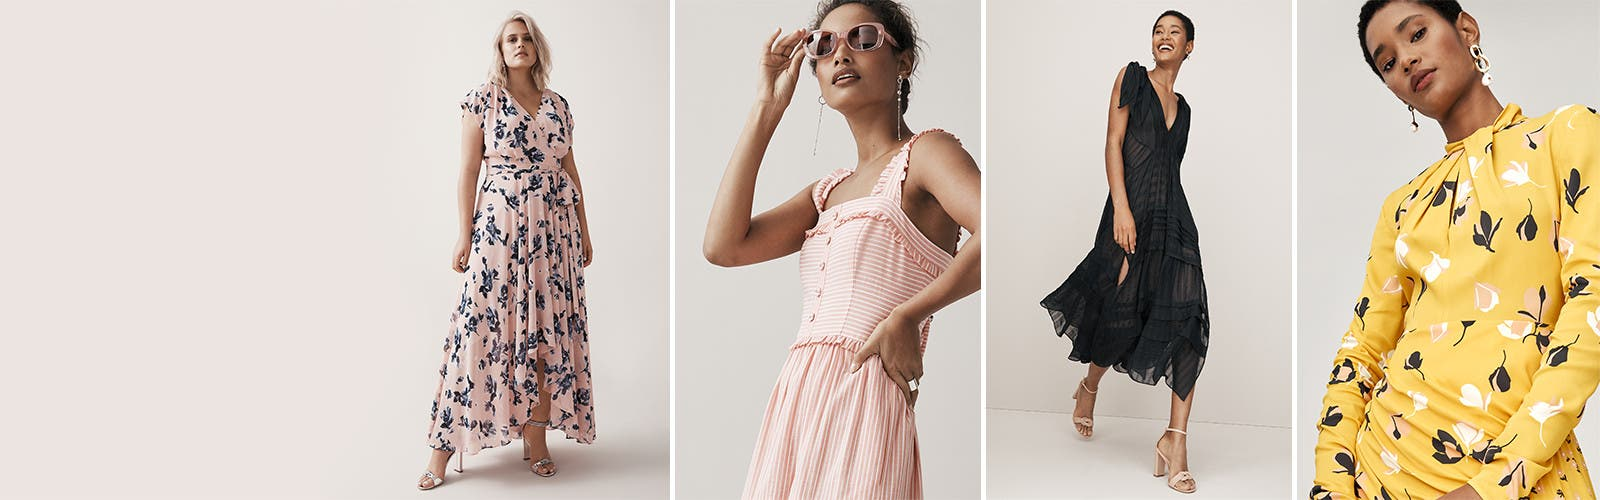 The new romantics: women's dresses.